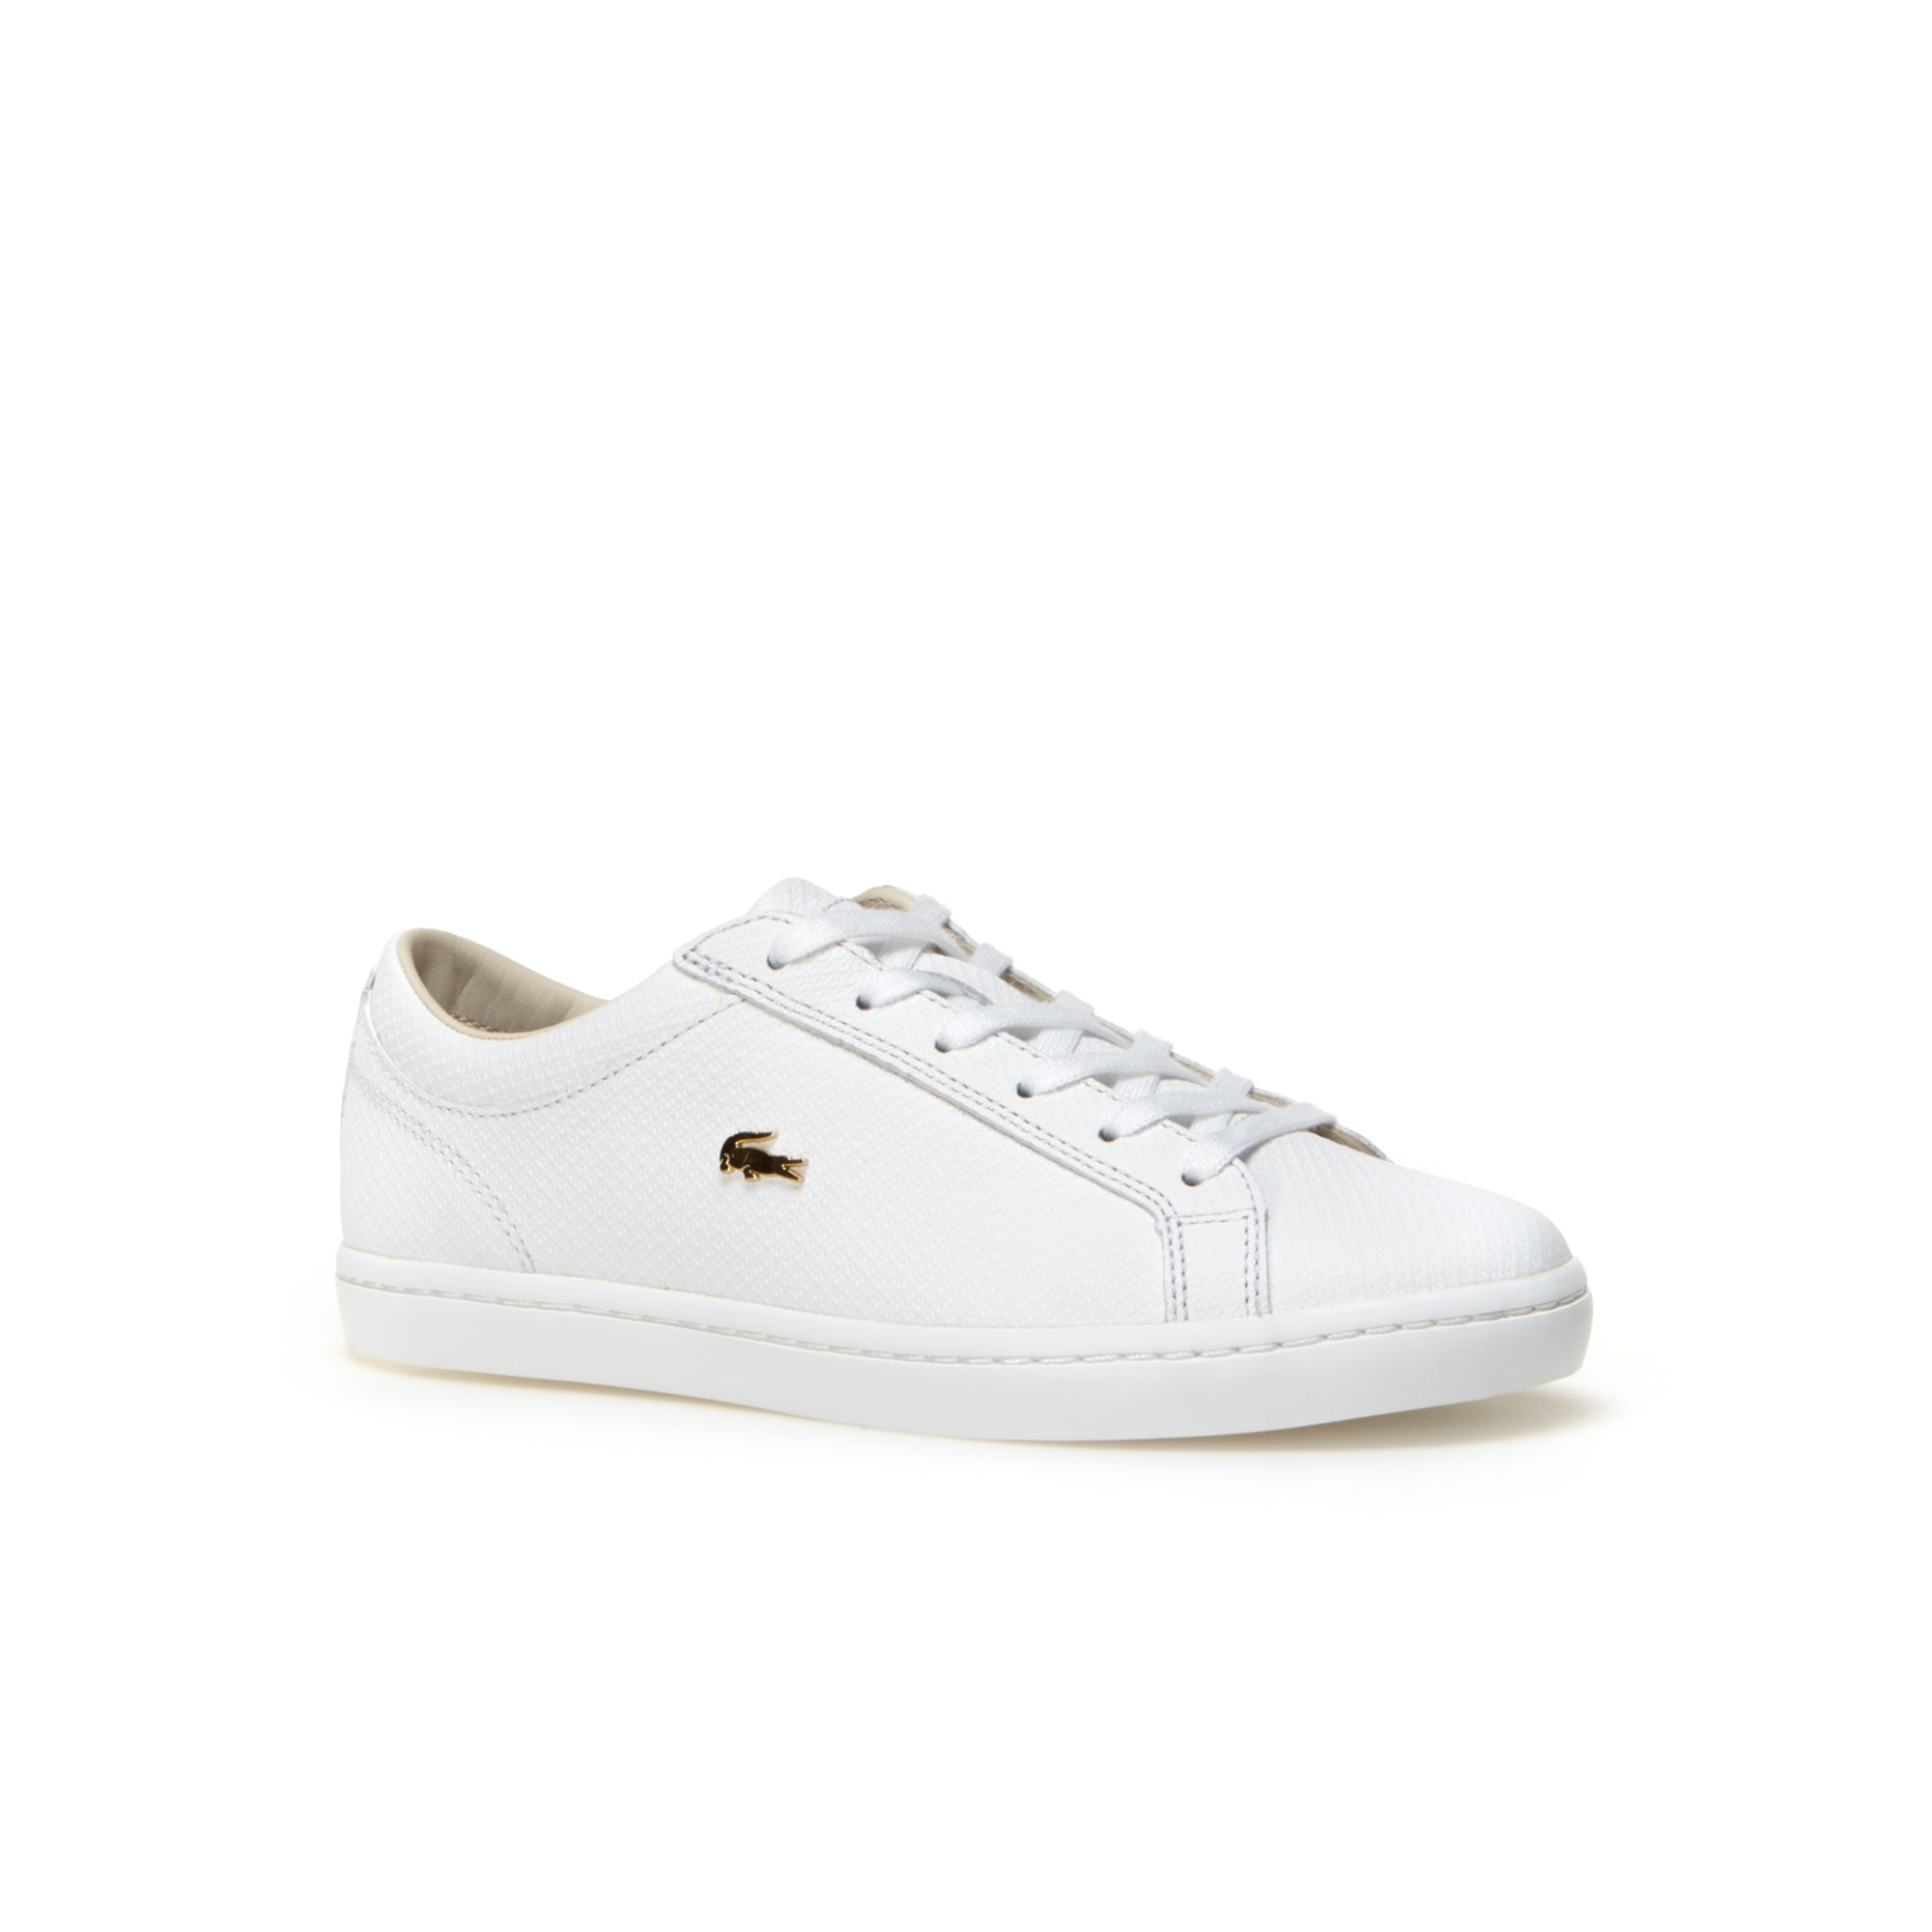 79937b11b Women s Straightset Leather trainers With Golden Croc